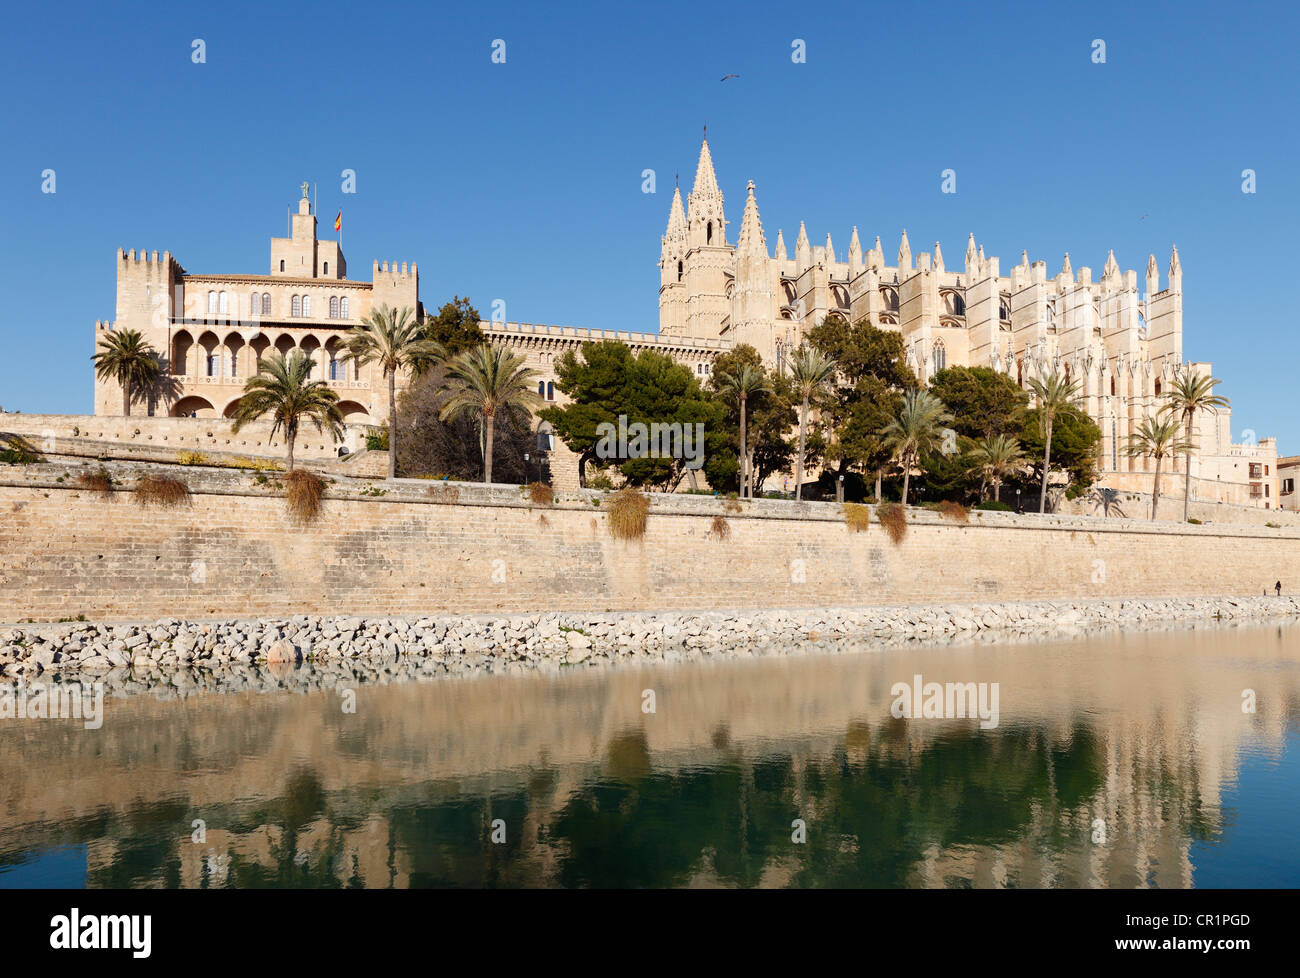 La Seu Cathedral, Parc de Mar, Palma de Majorca, Majorca, Balearic Islands, Spain, Europe - Stock Image